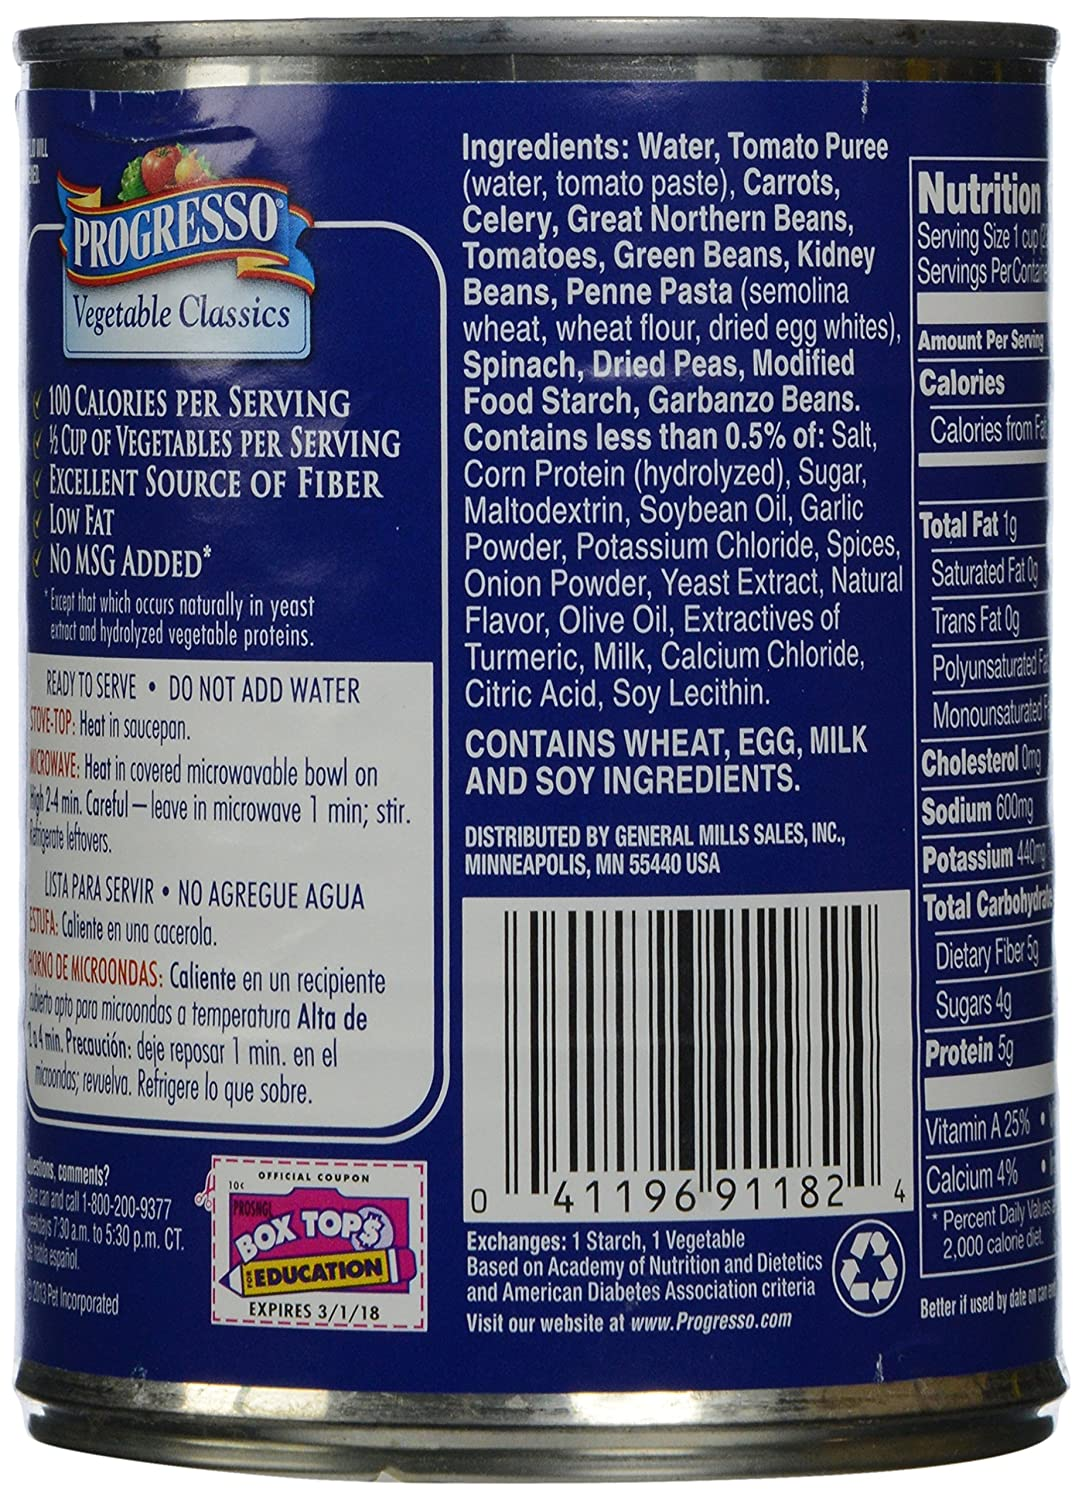 Amazon.com : Progresso Low Fat Vegetable Classics 99% Fat Free Minestrone Soup 19 oz Can : Grocery & Gourmet Food